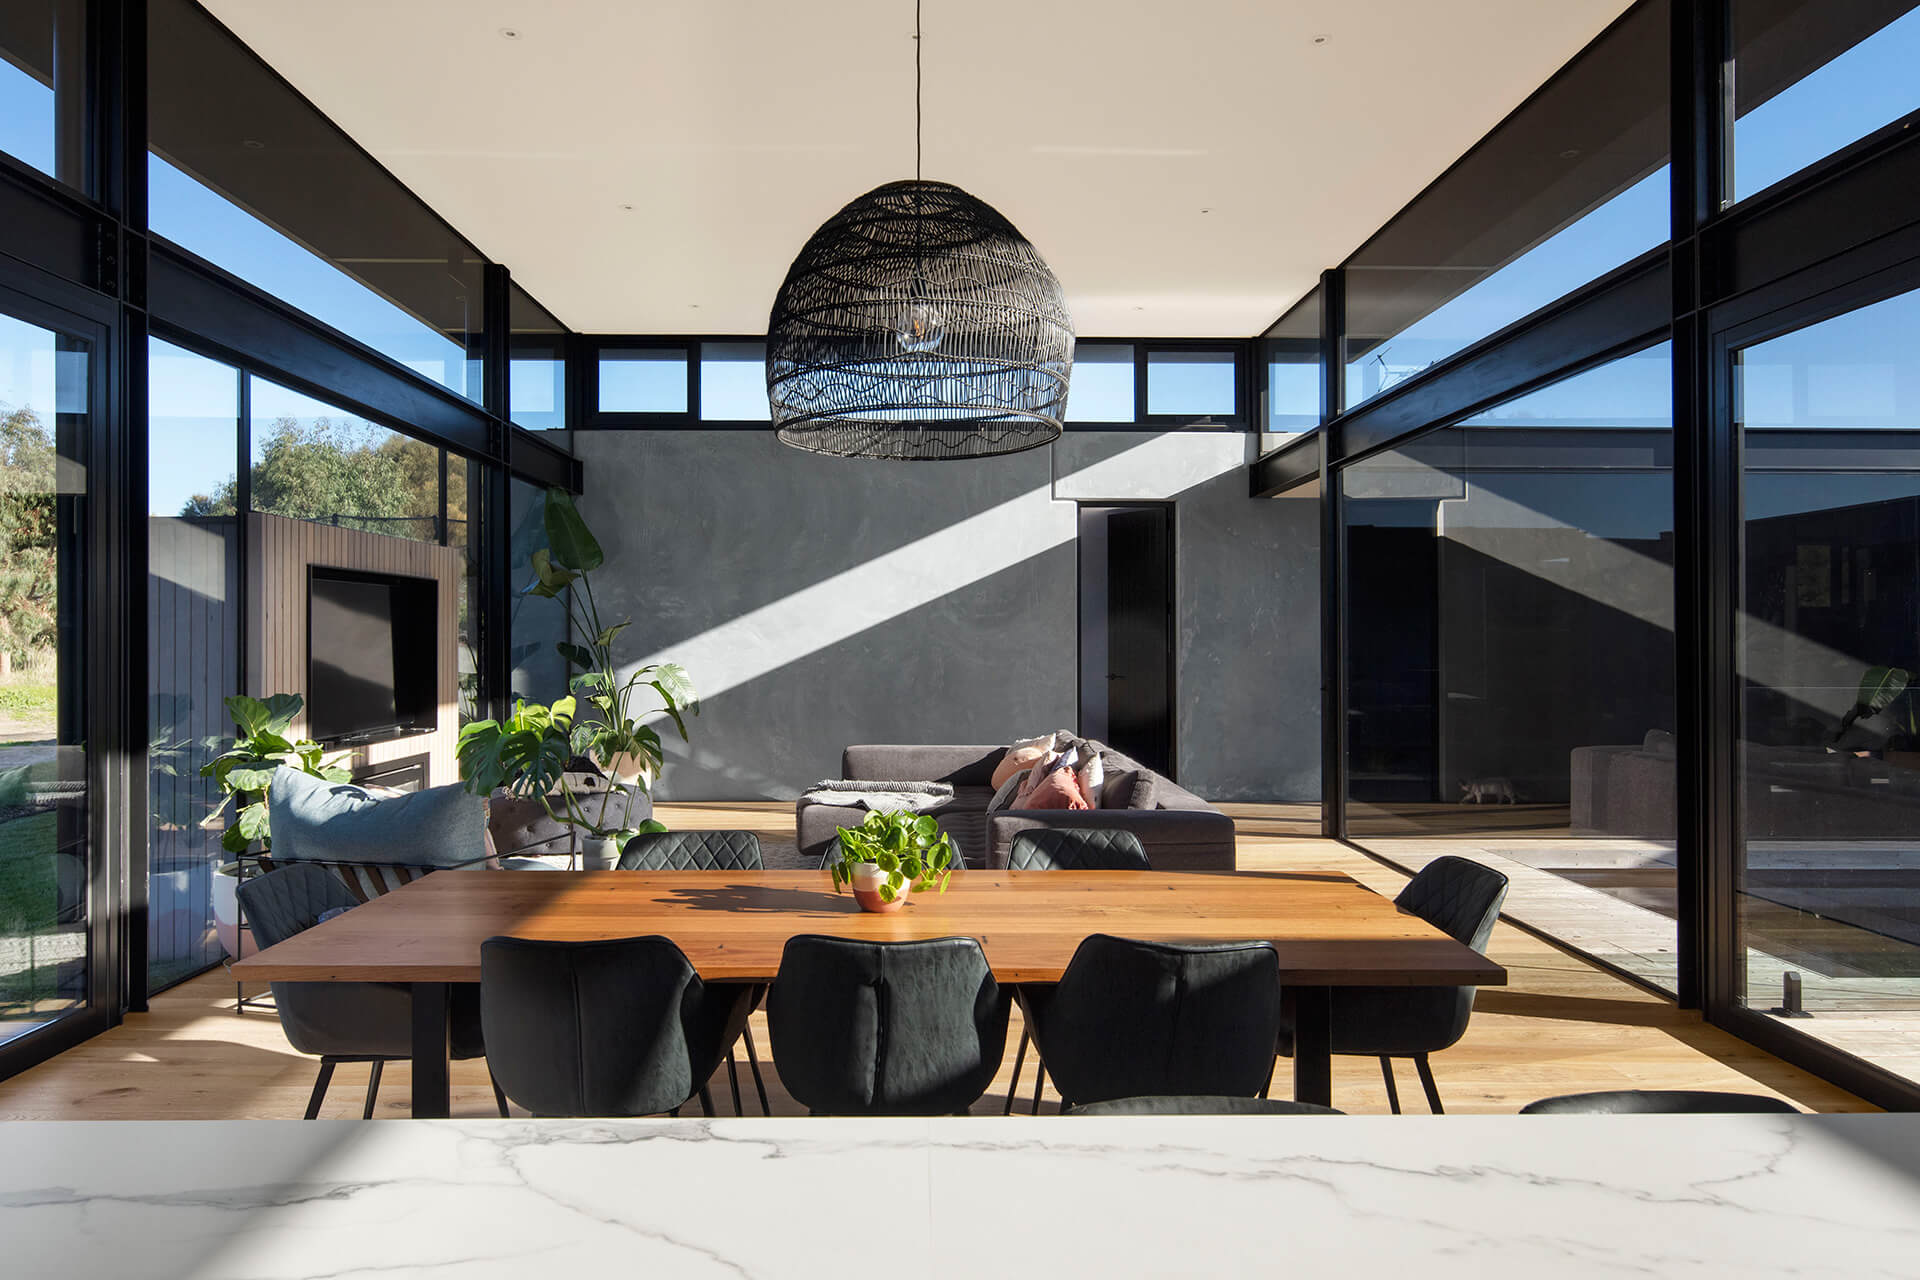 Northern light pouring into the house | Cashmore House | Lachlan Shepherd Architects | STIRworld